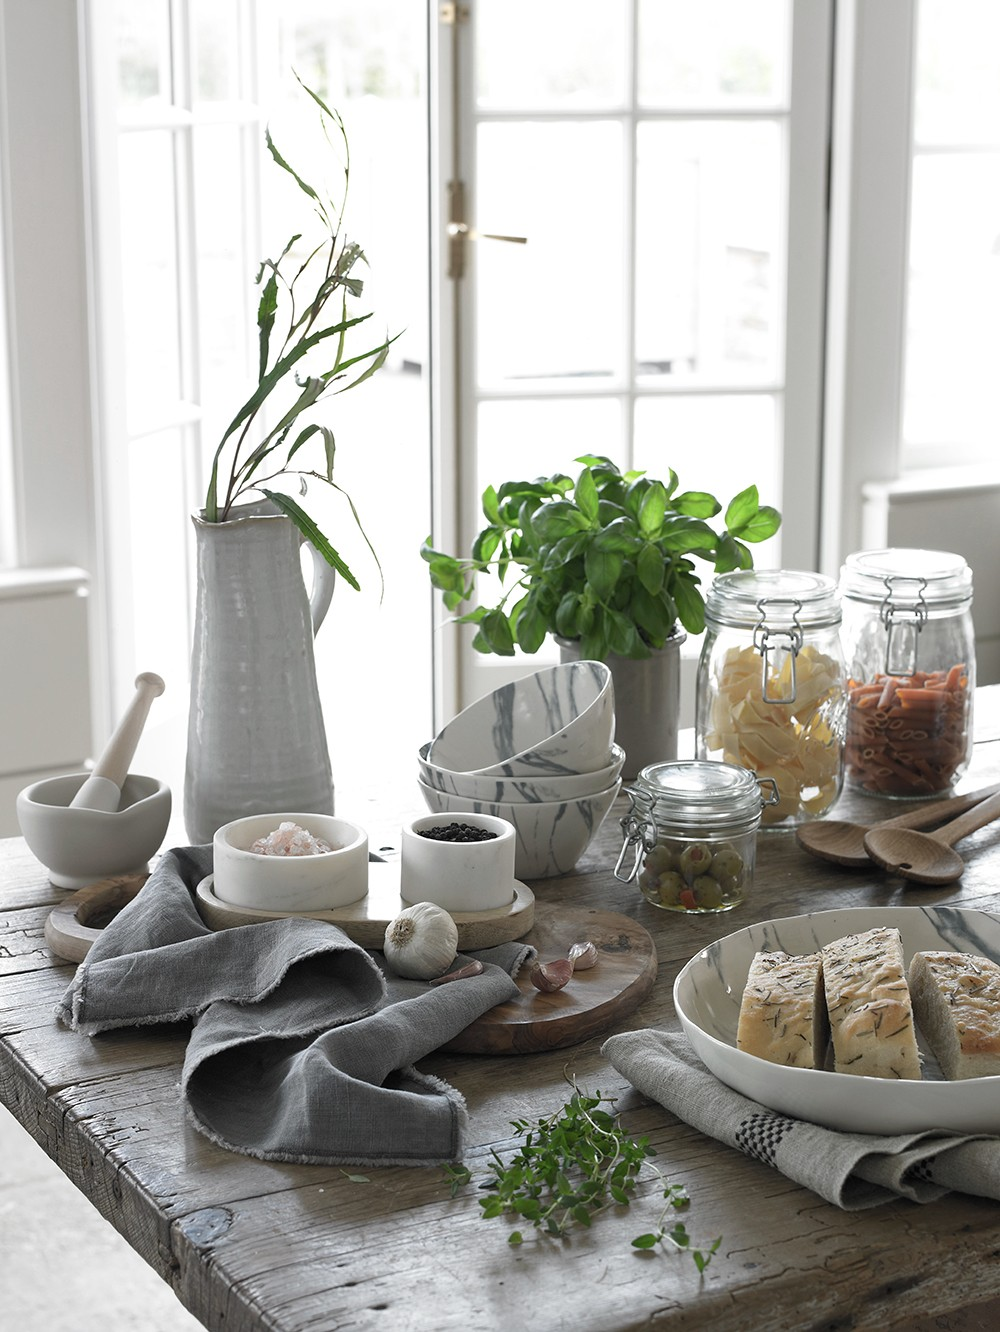 Stylish marble kitchen accessories combined with faded linen napkins, with a reclaimed wooden table. Shot for Country Homes & Interiors, styled by Pippa Jameson and photographed by David Britton